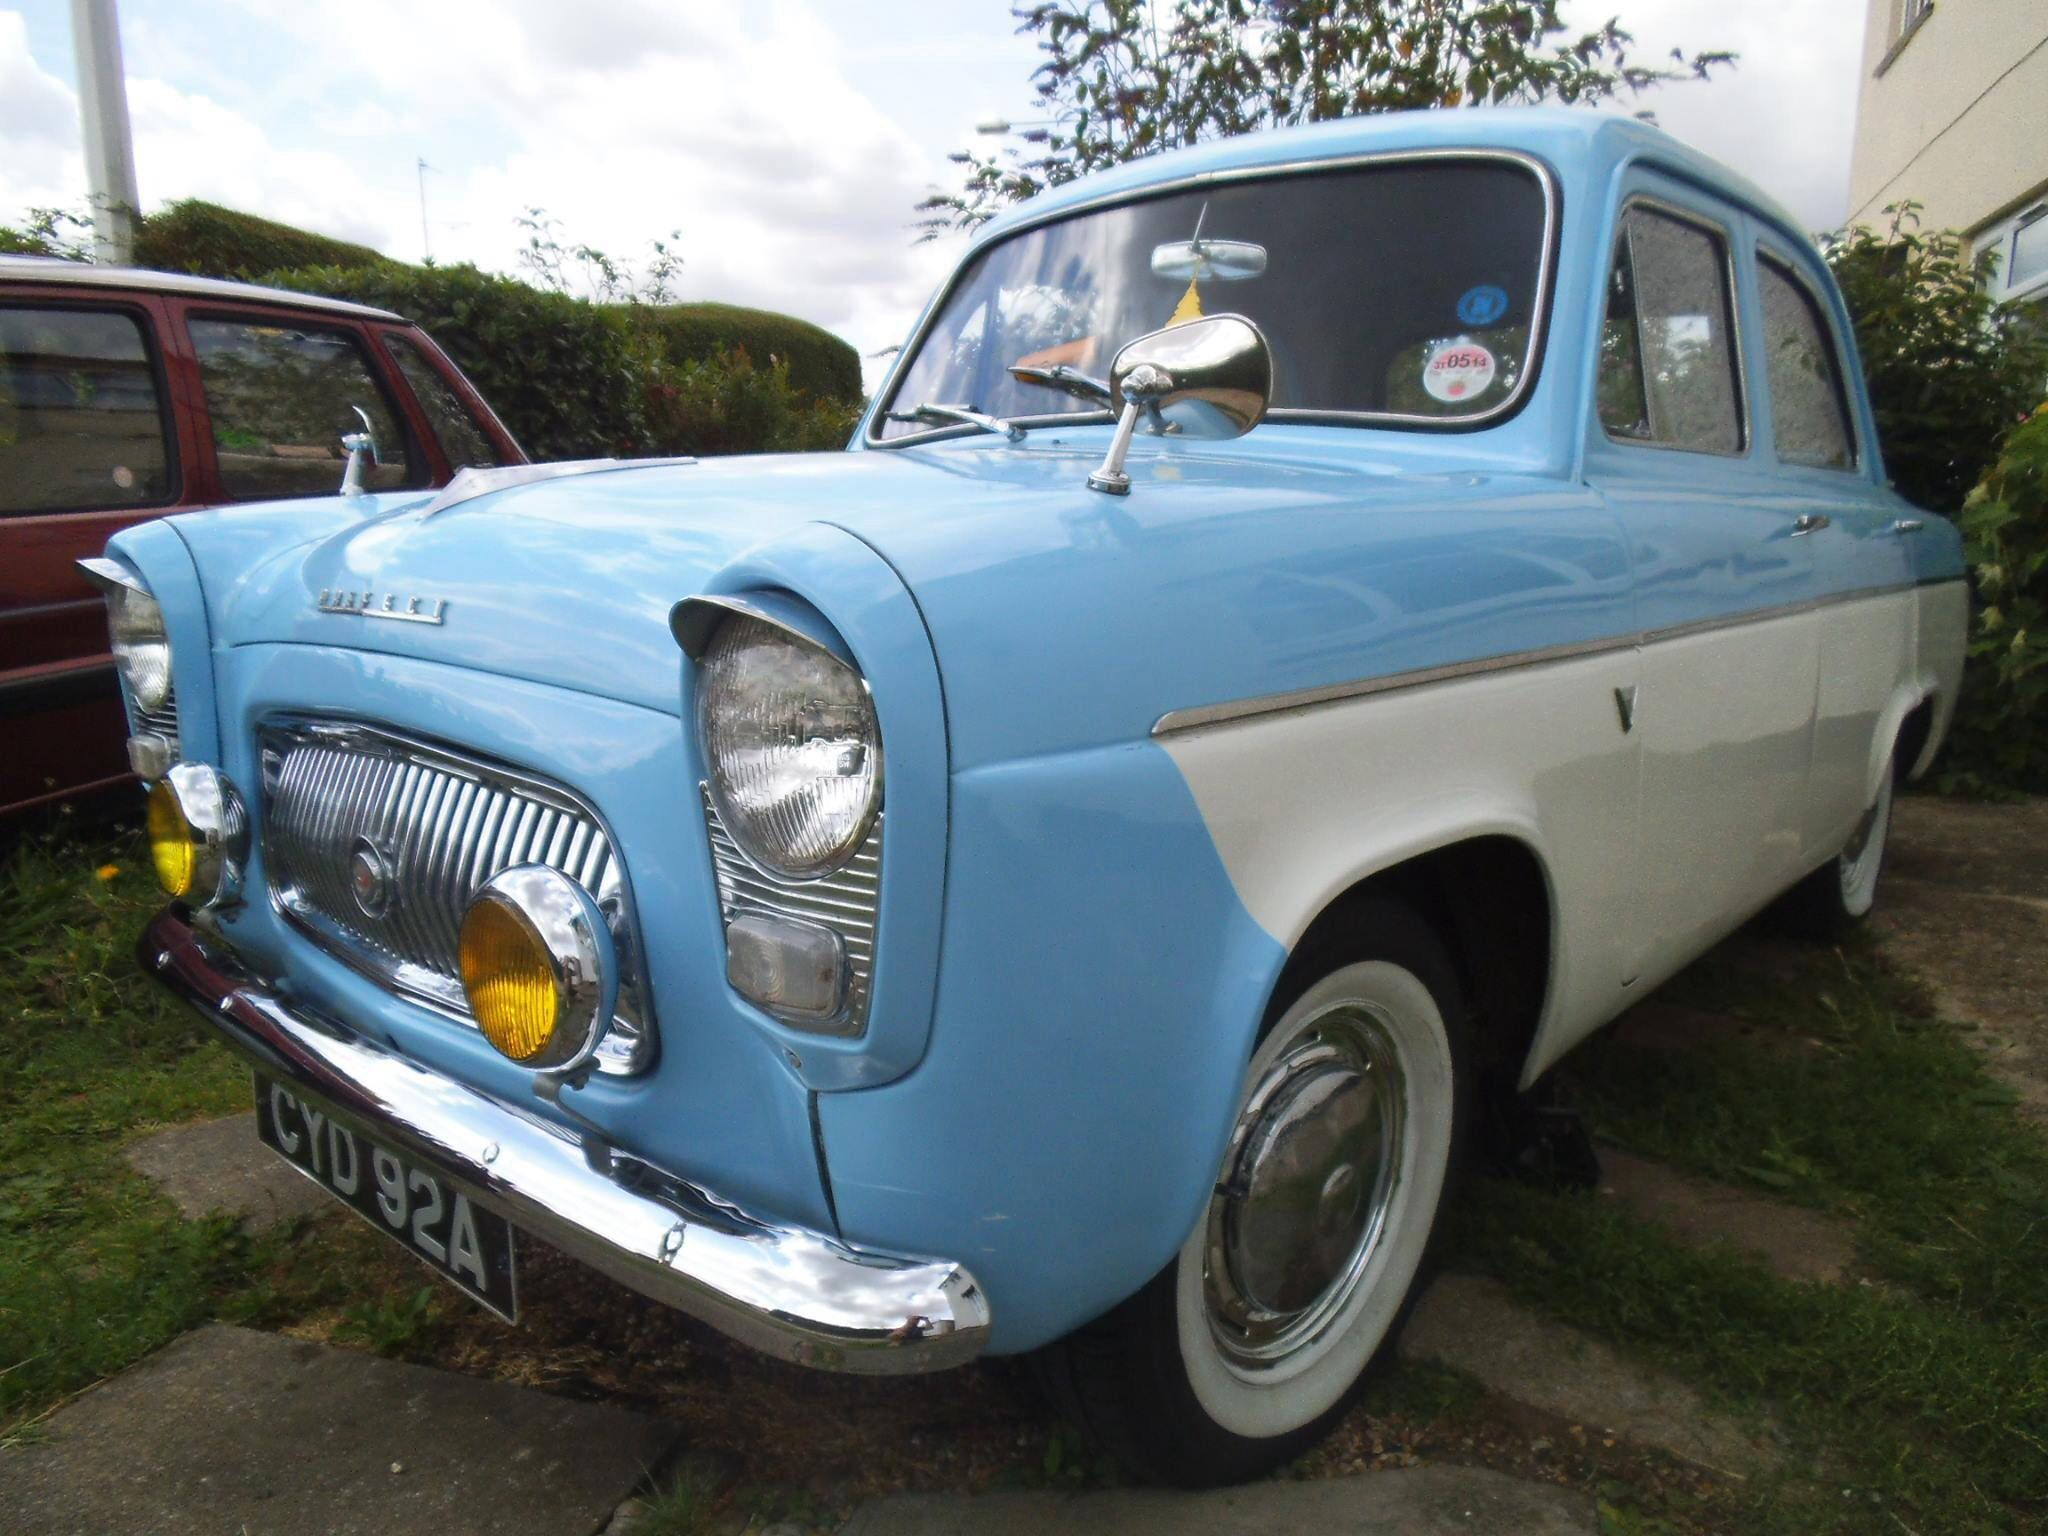 Ford Prefect Commercial Vehicle Posh Cars Ford Anglia